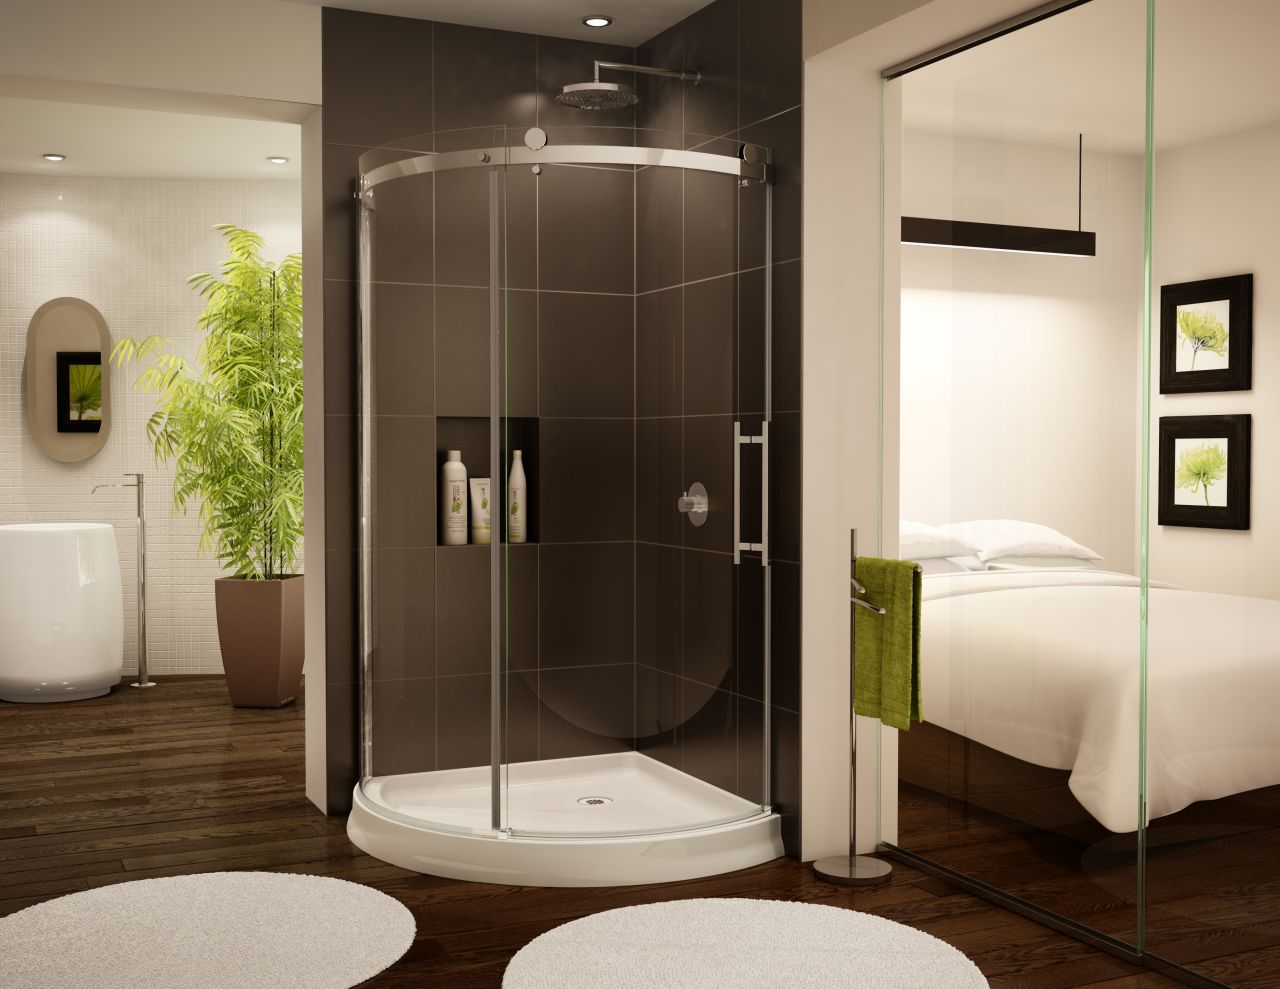 Acrylic Shower Base | Innovate Building Solutions Blog - Bathroom ...